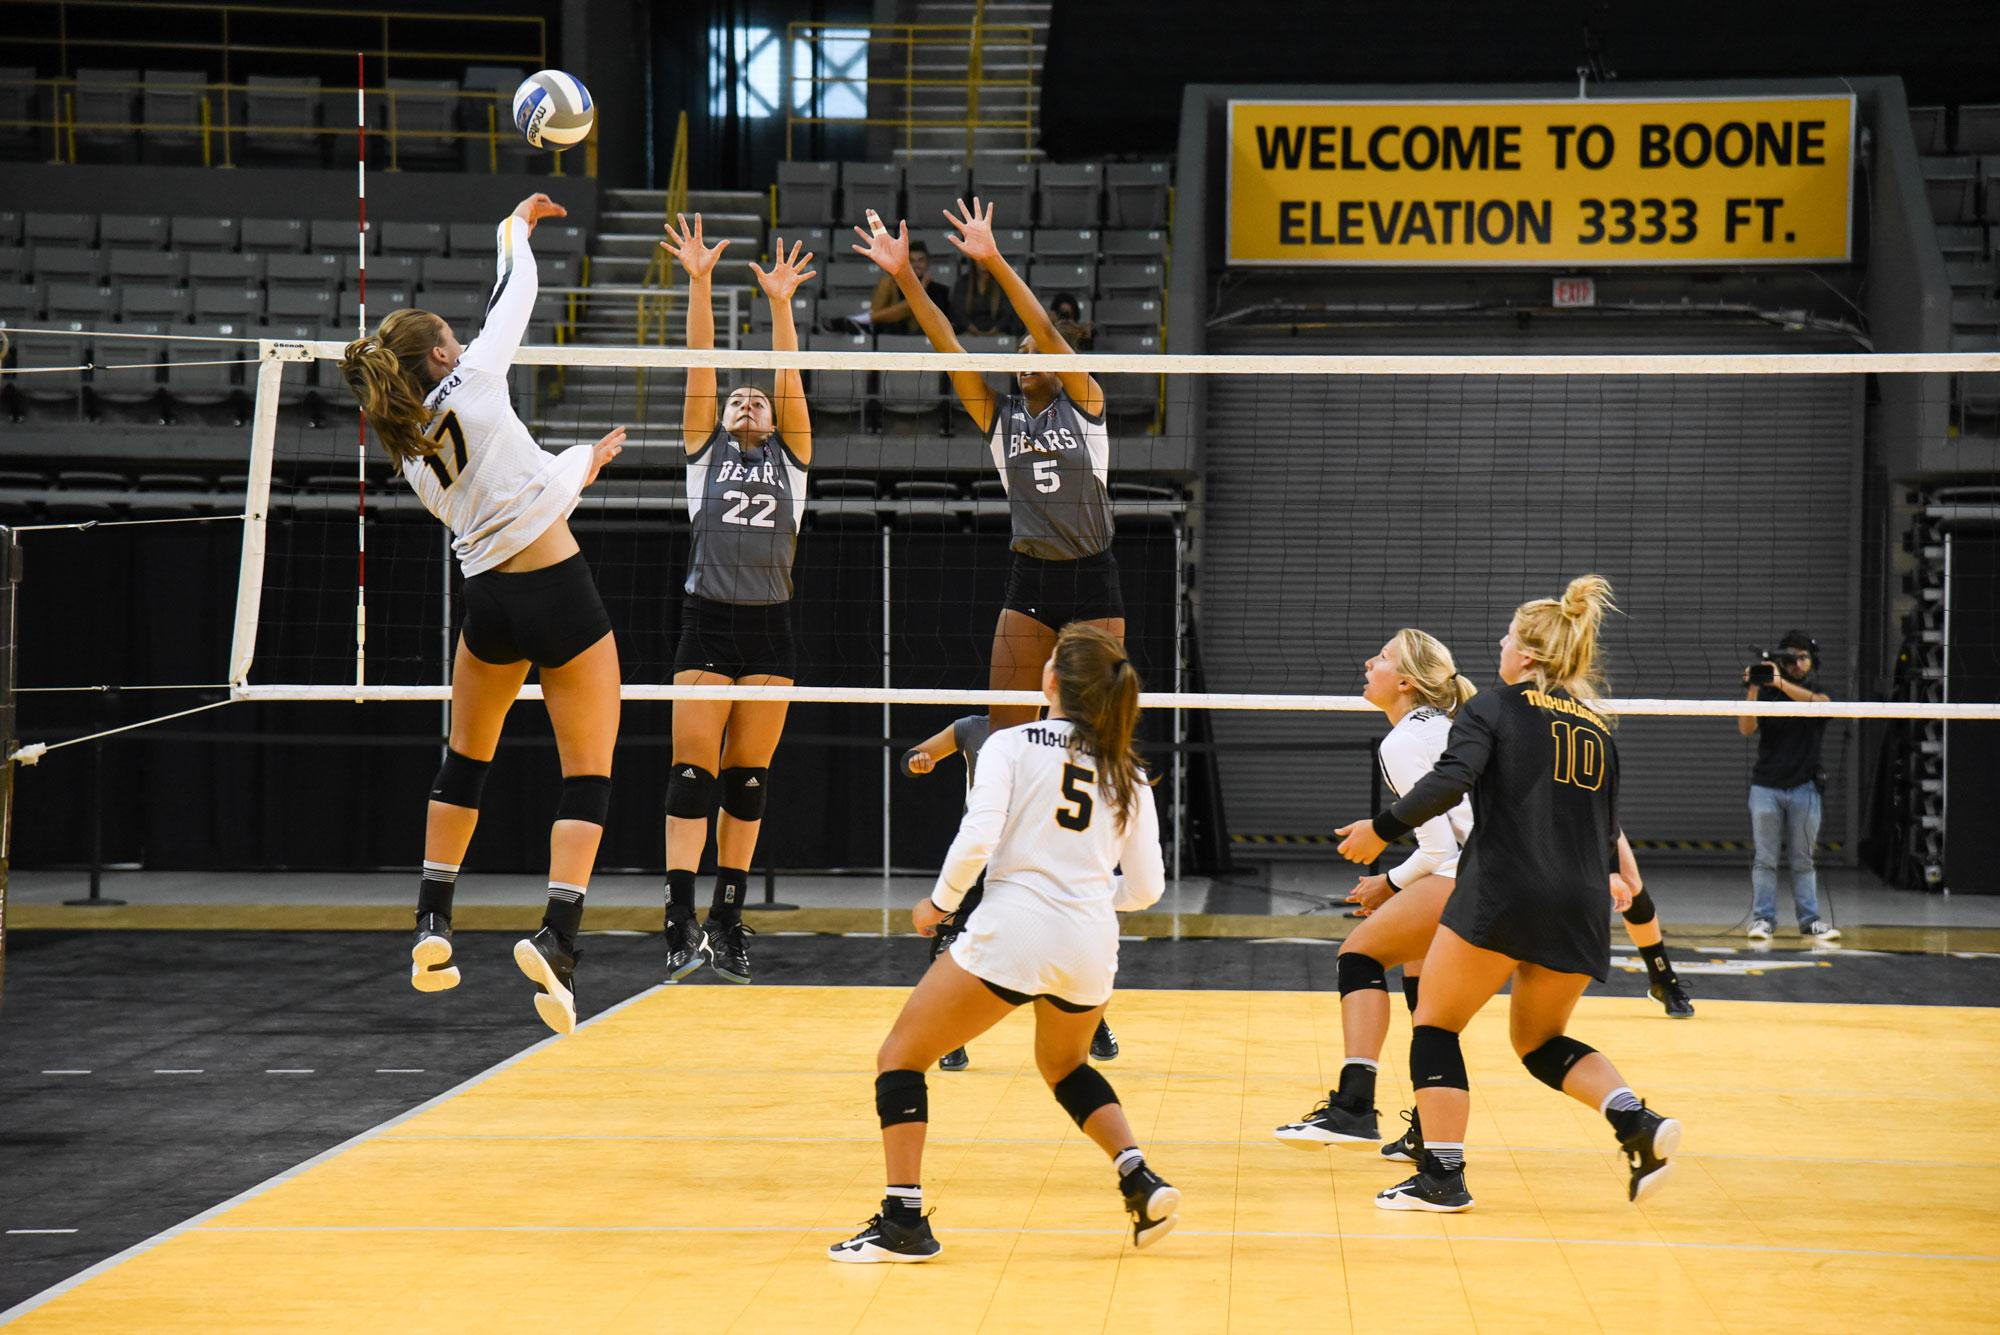 Redshirt+sophomore+Melissa+McMath+goes+up+for+the+kill+against+Missouri+State.+The+Mountaineers+lost+the+game+with+the+final+score+being+2-3.